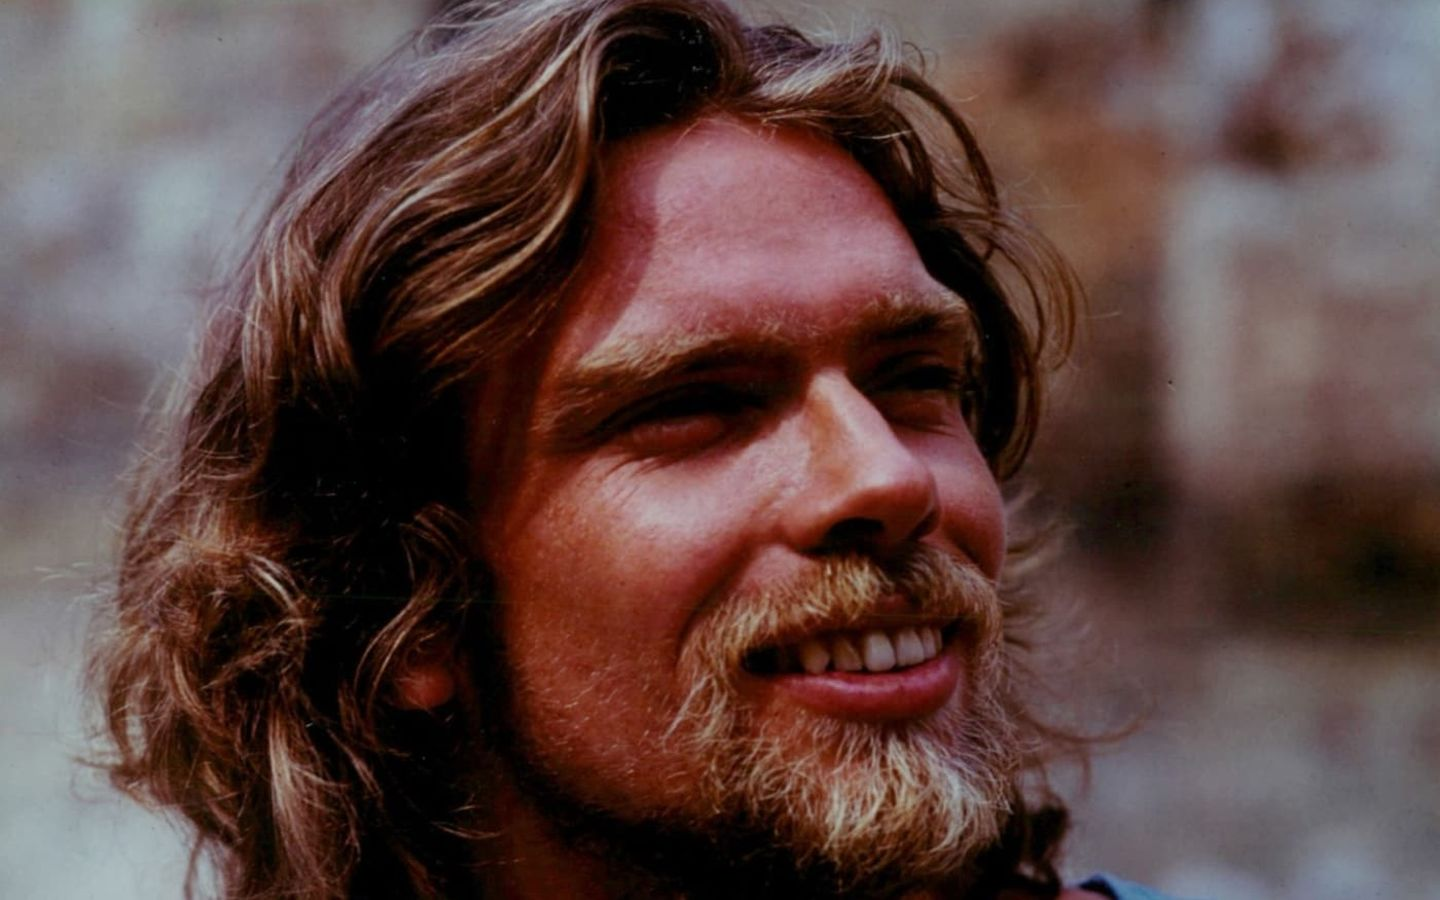 A close up of a young Richard Branson